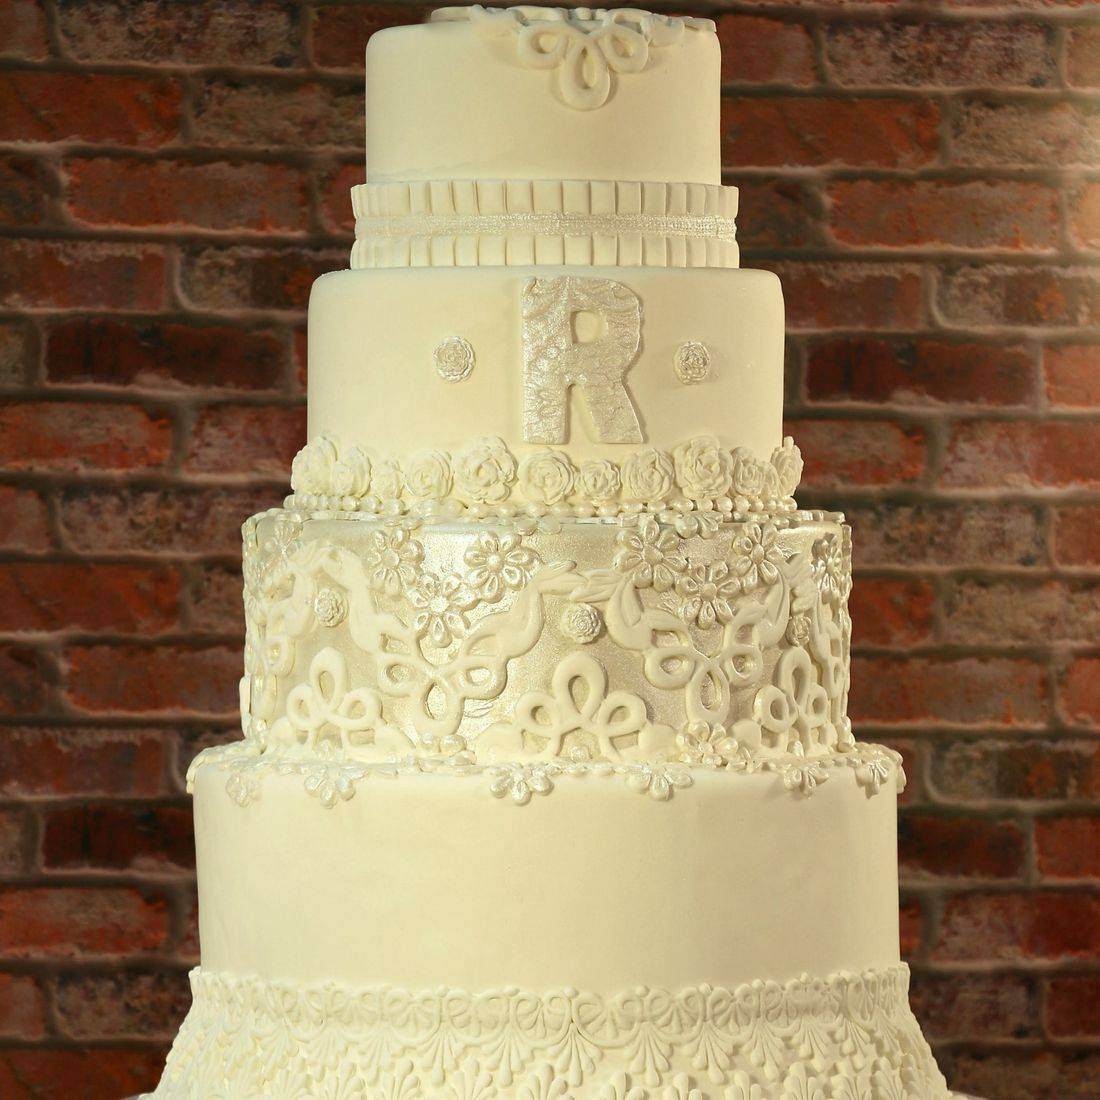 Lace wedding cake elegant classic monogram